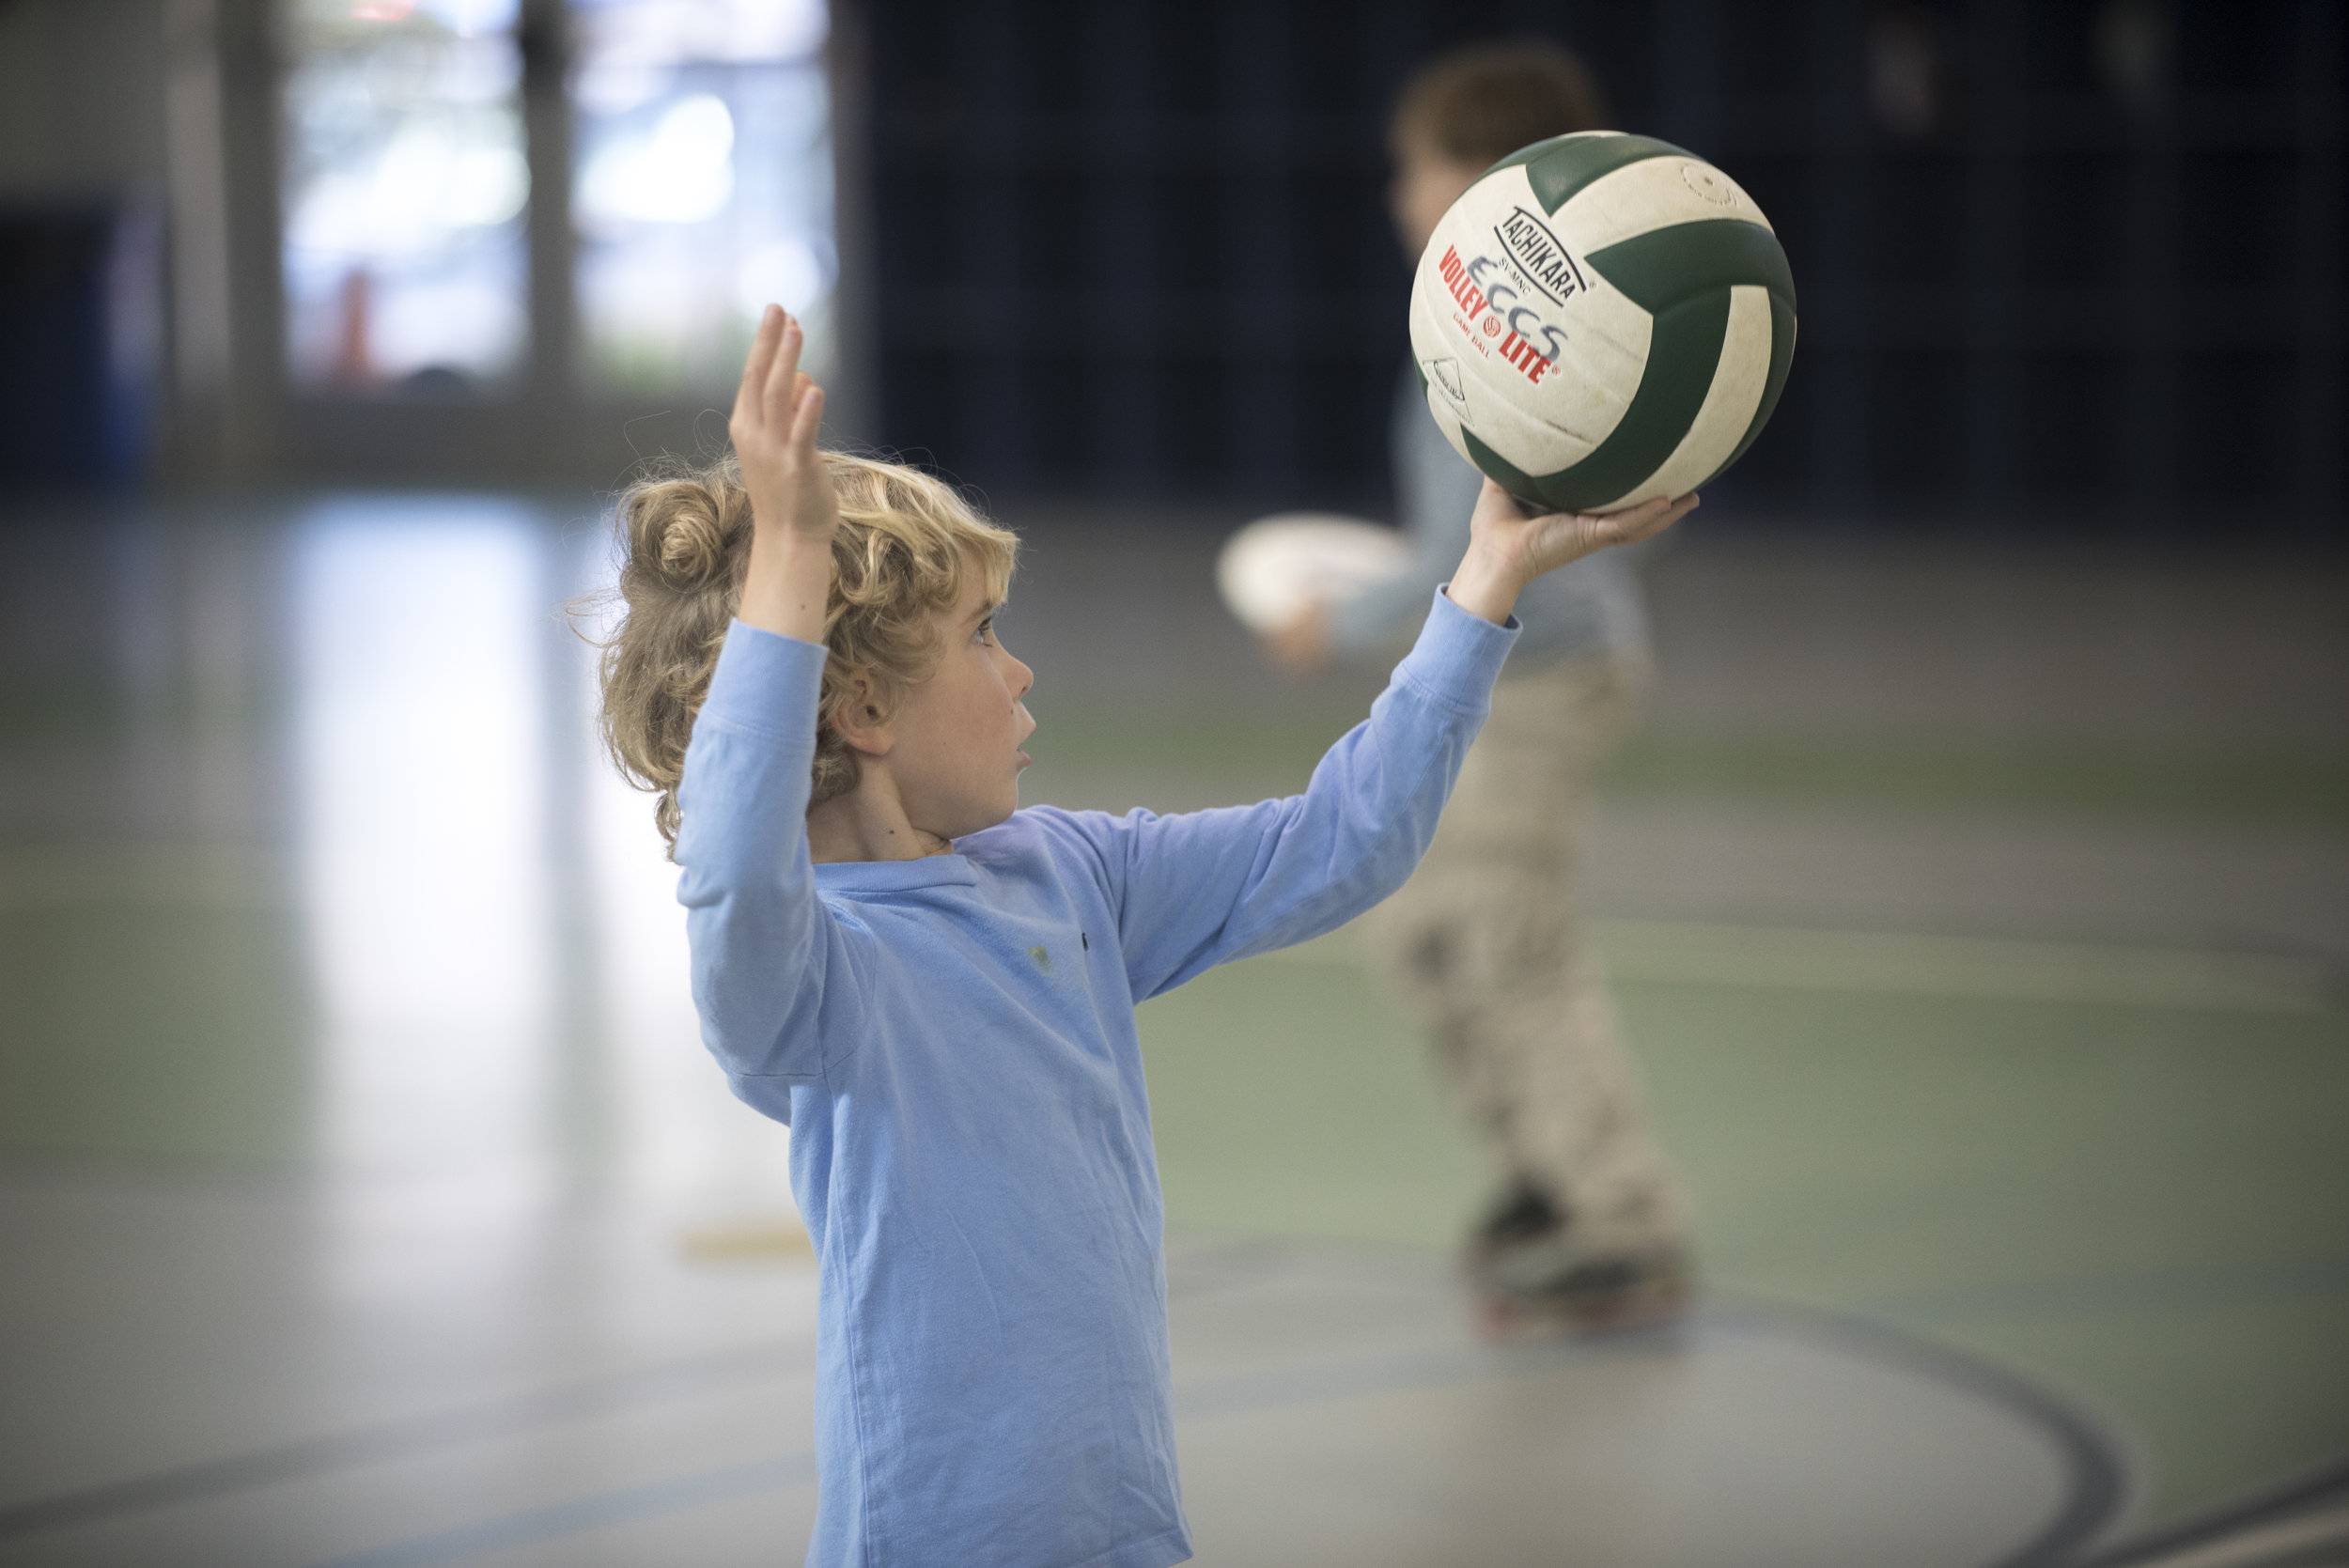 Landon uses correct form of striking a volleyball.